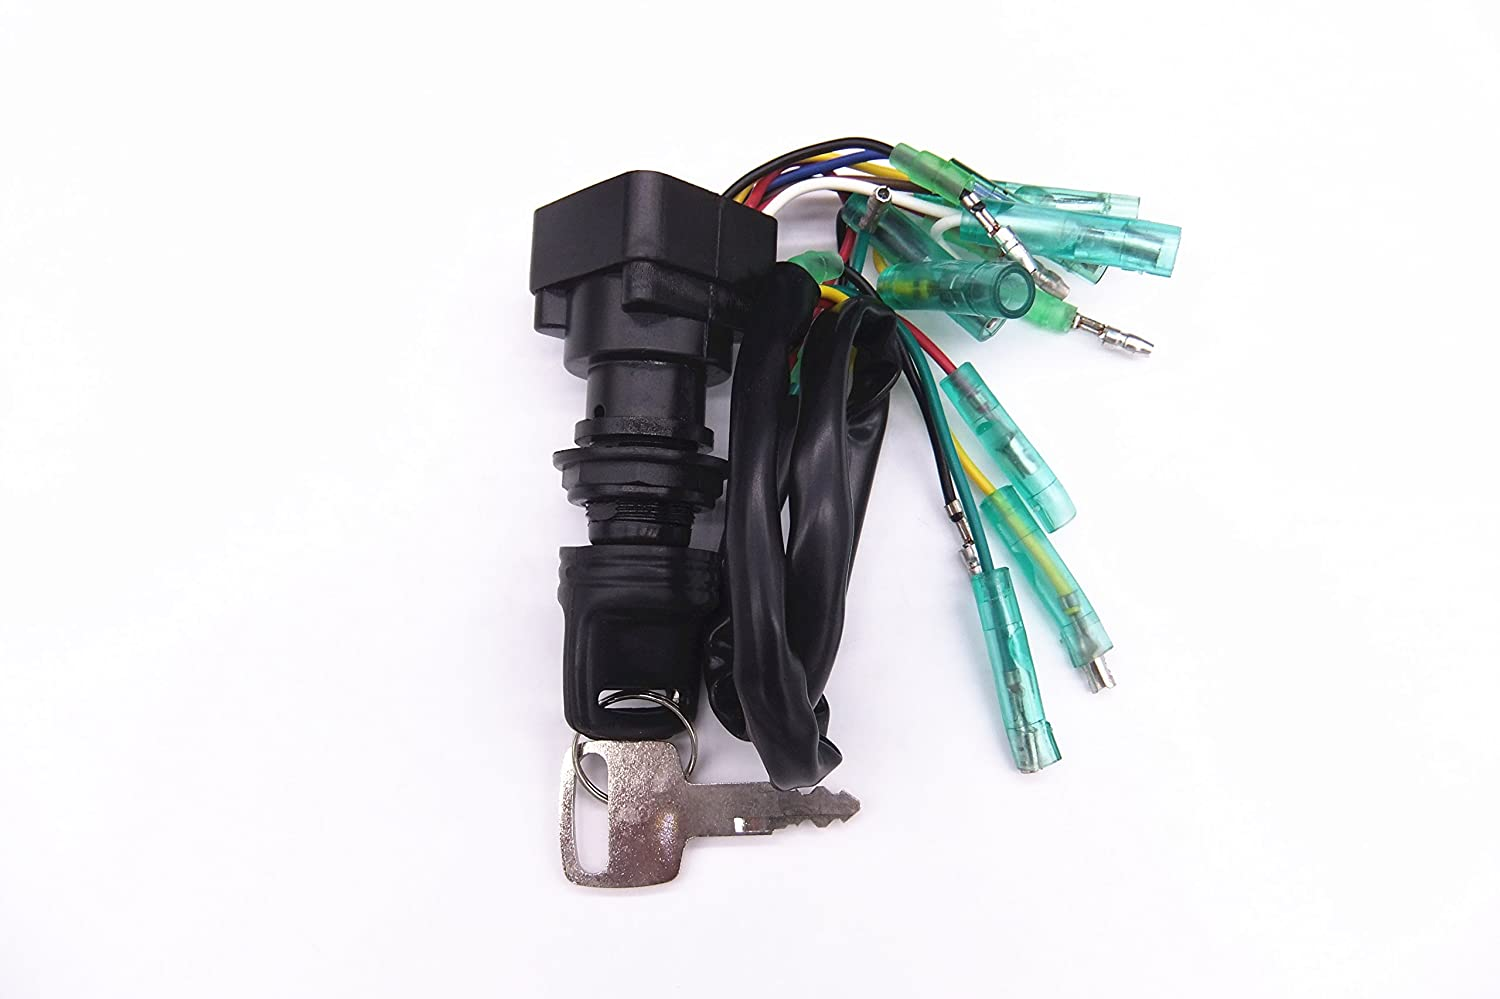 Remote Control Box Ignition Switch Main Assy Omc 5005801 Wiring Diagram 703 82510 43 00 For Yamaha Outboard Motors 42 Push To Choke 10p Sports